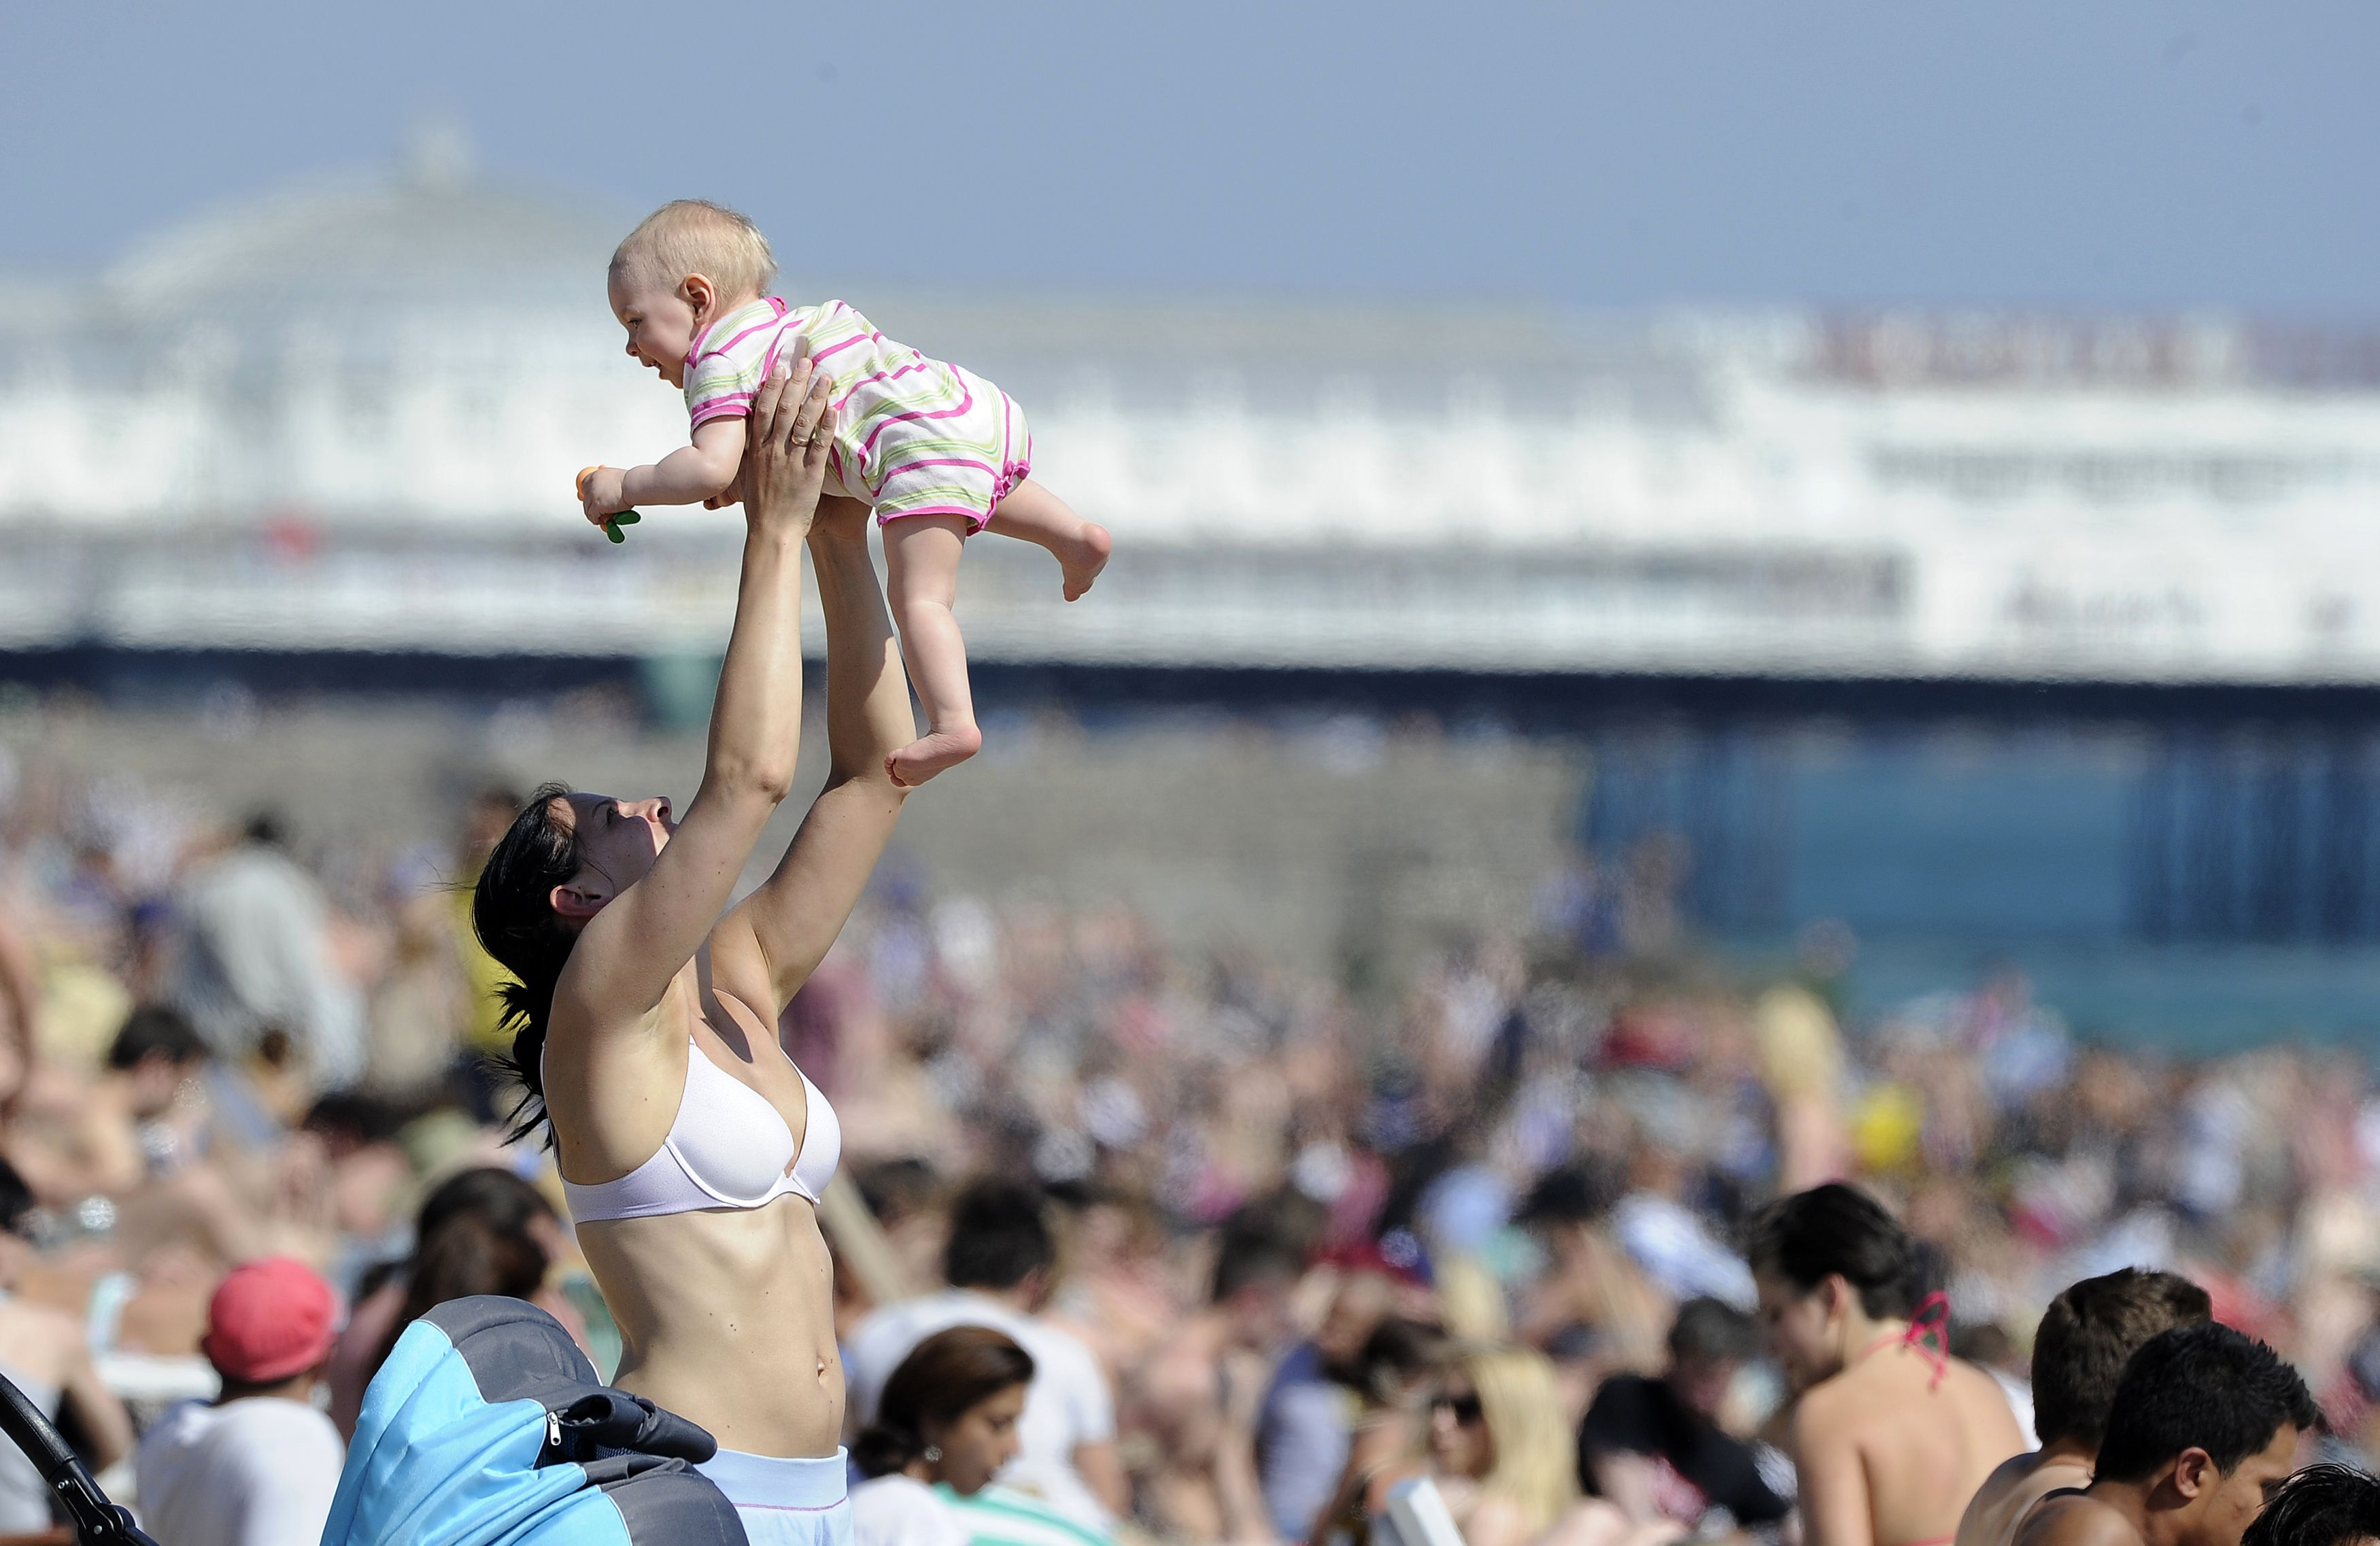 Sunbathers soak up the warmth on Brighton beach, in southern England May 26, 2012. REUTERS/Paul Hackett